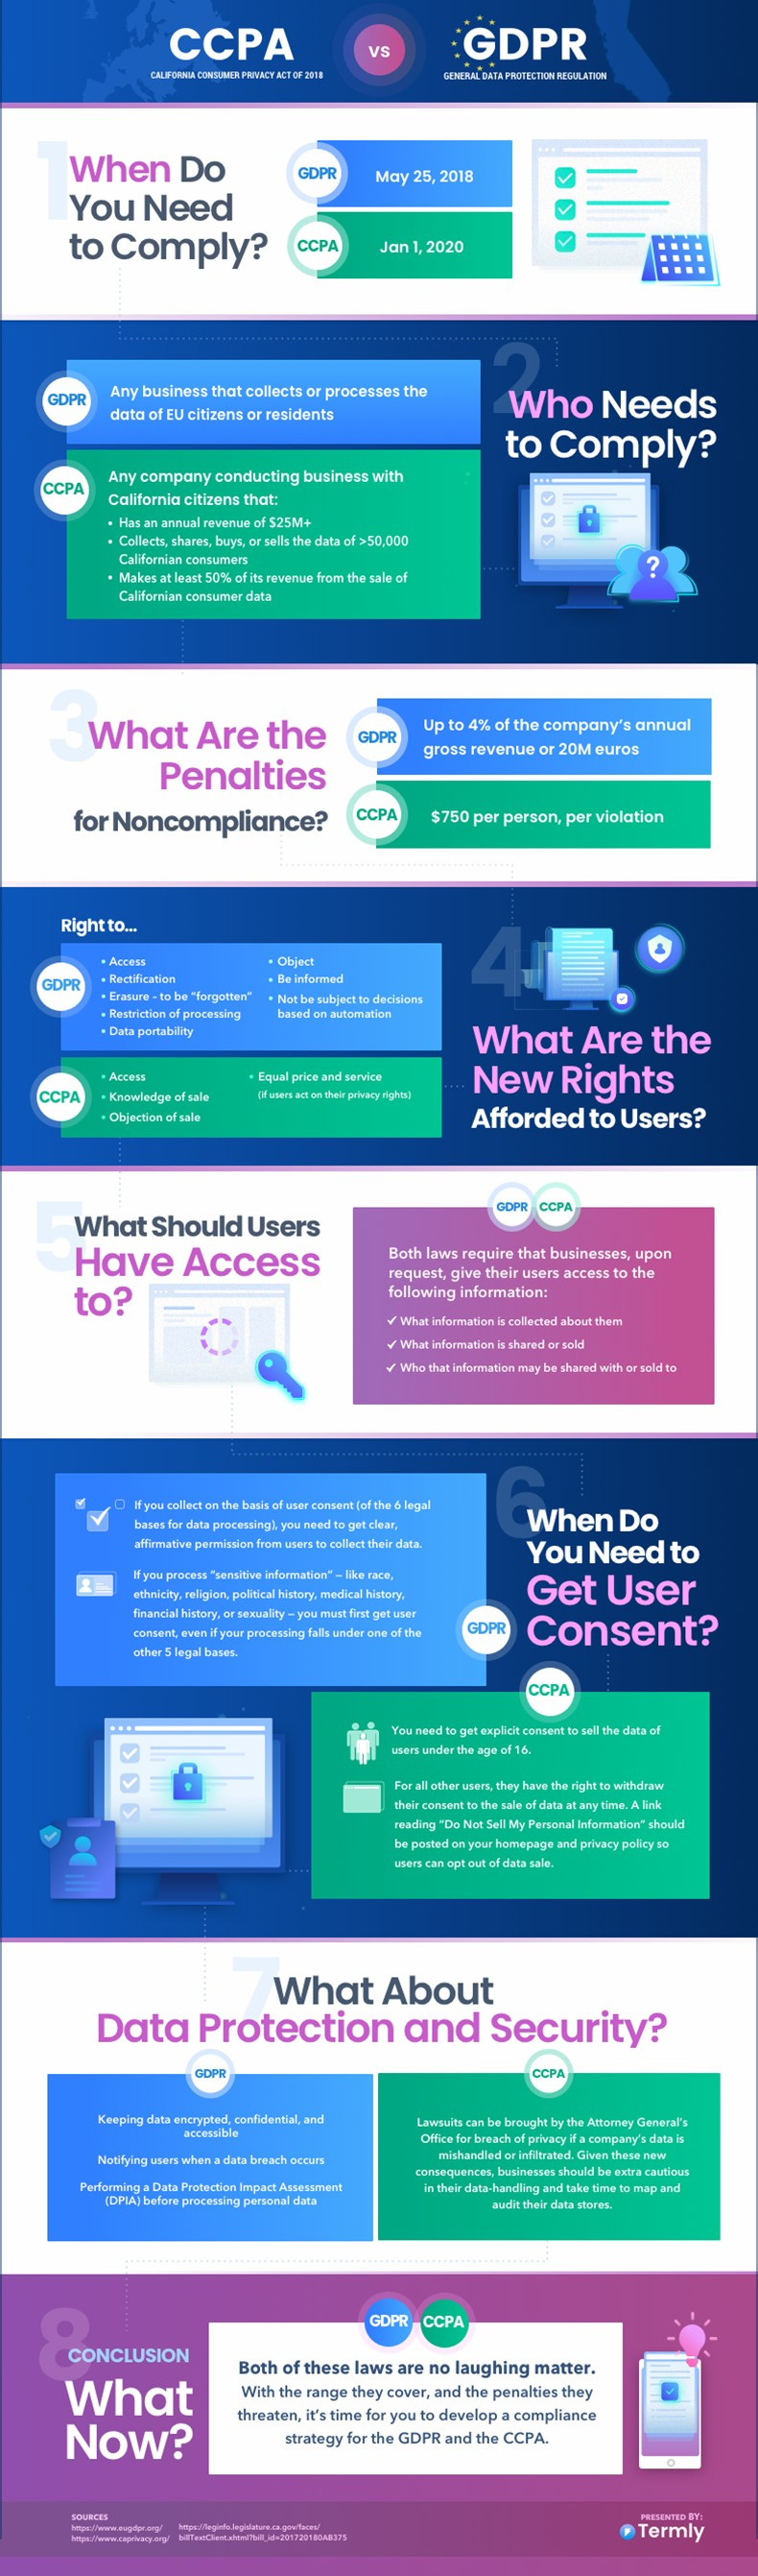 GDPR vs. CCPA: Data Privacy and US Marketers [Infographic] : MarketingProfs Article 1